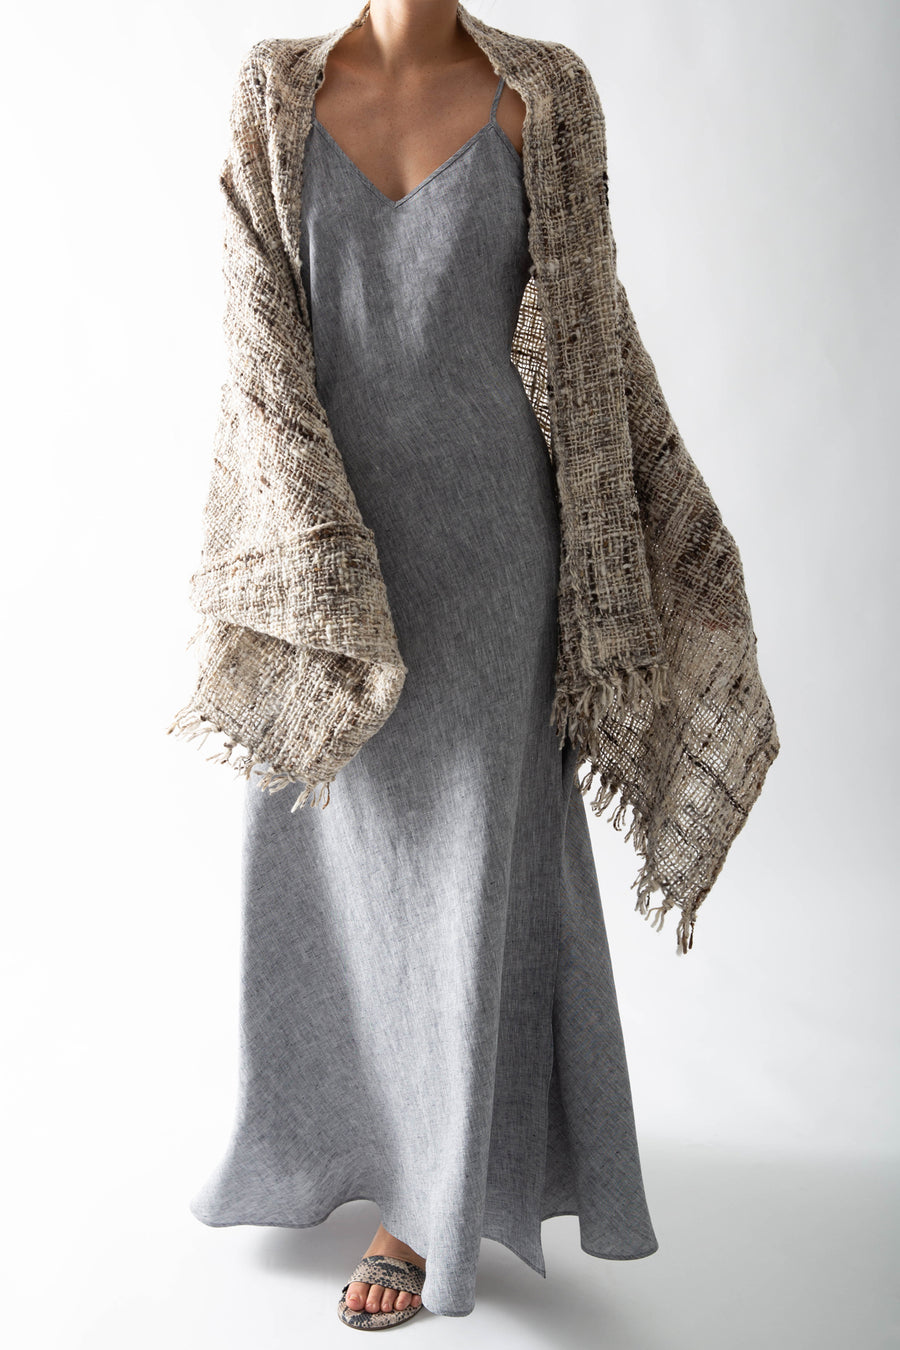 This is a photo of a woman from the neck down. She is wearing a long, woven shawl on top of a linen slip dress. The shawl is multicolored, featuring natural shades of gray, brown, and tan and has fringed tassels along the edges.